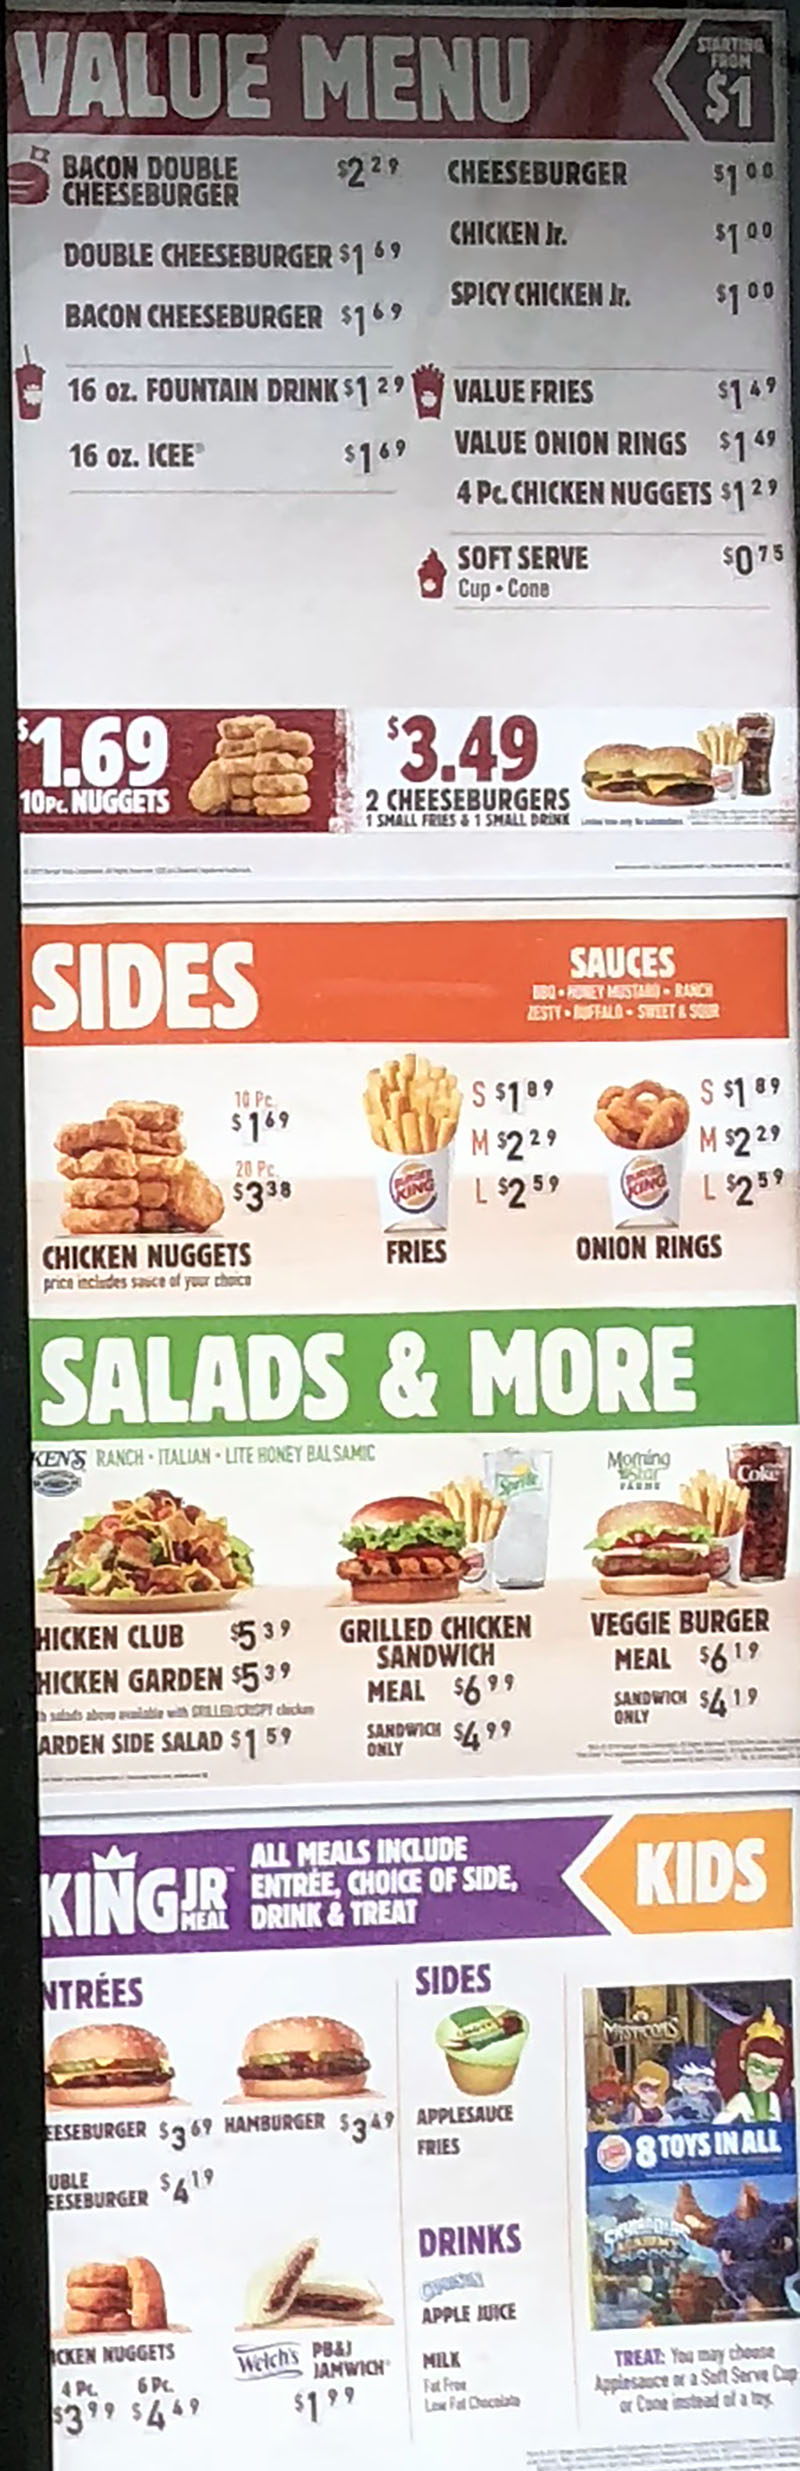 Burger King menu 2018 - value menu, sides, salads, kids